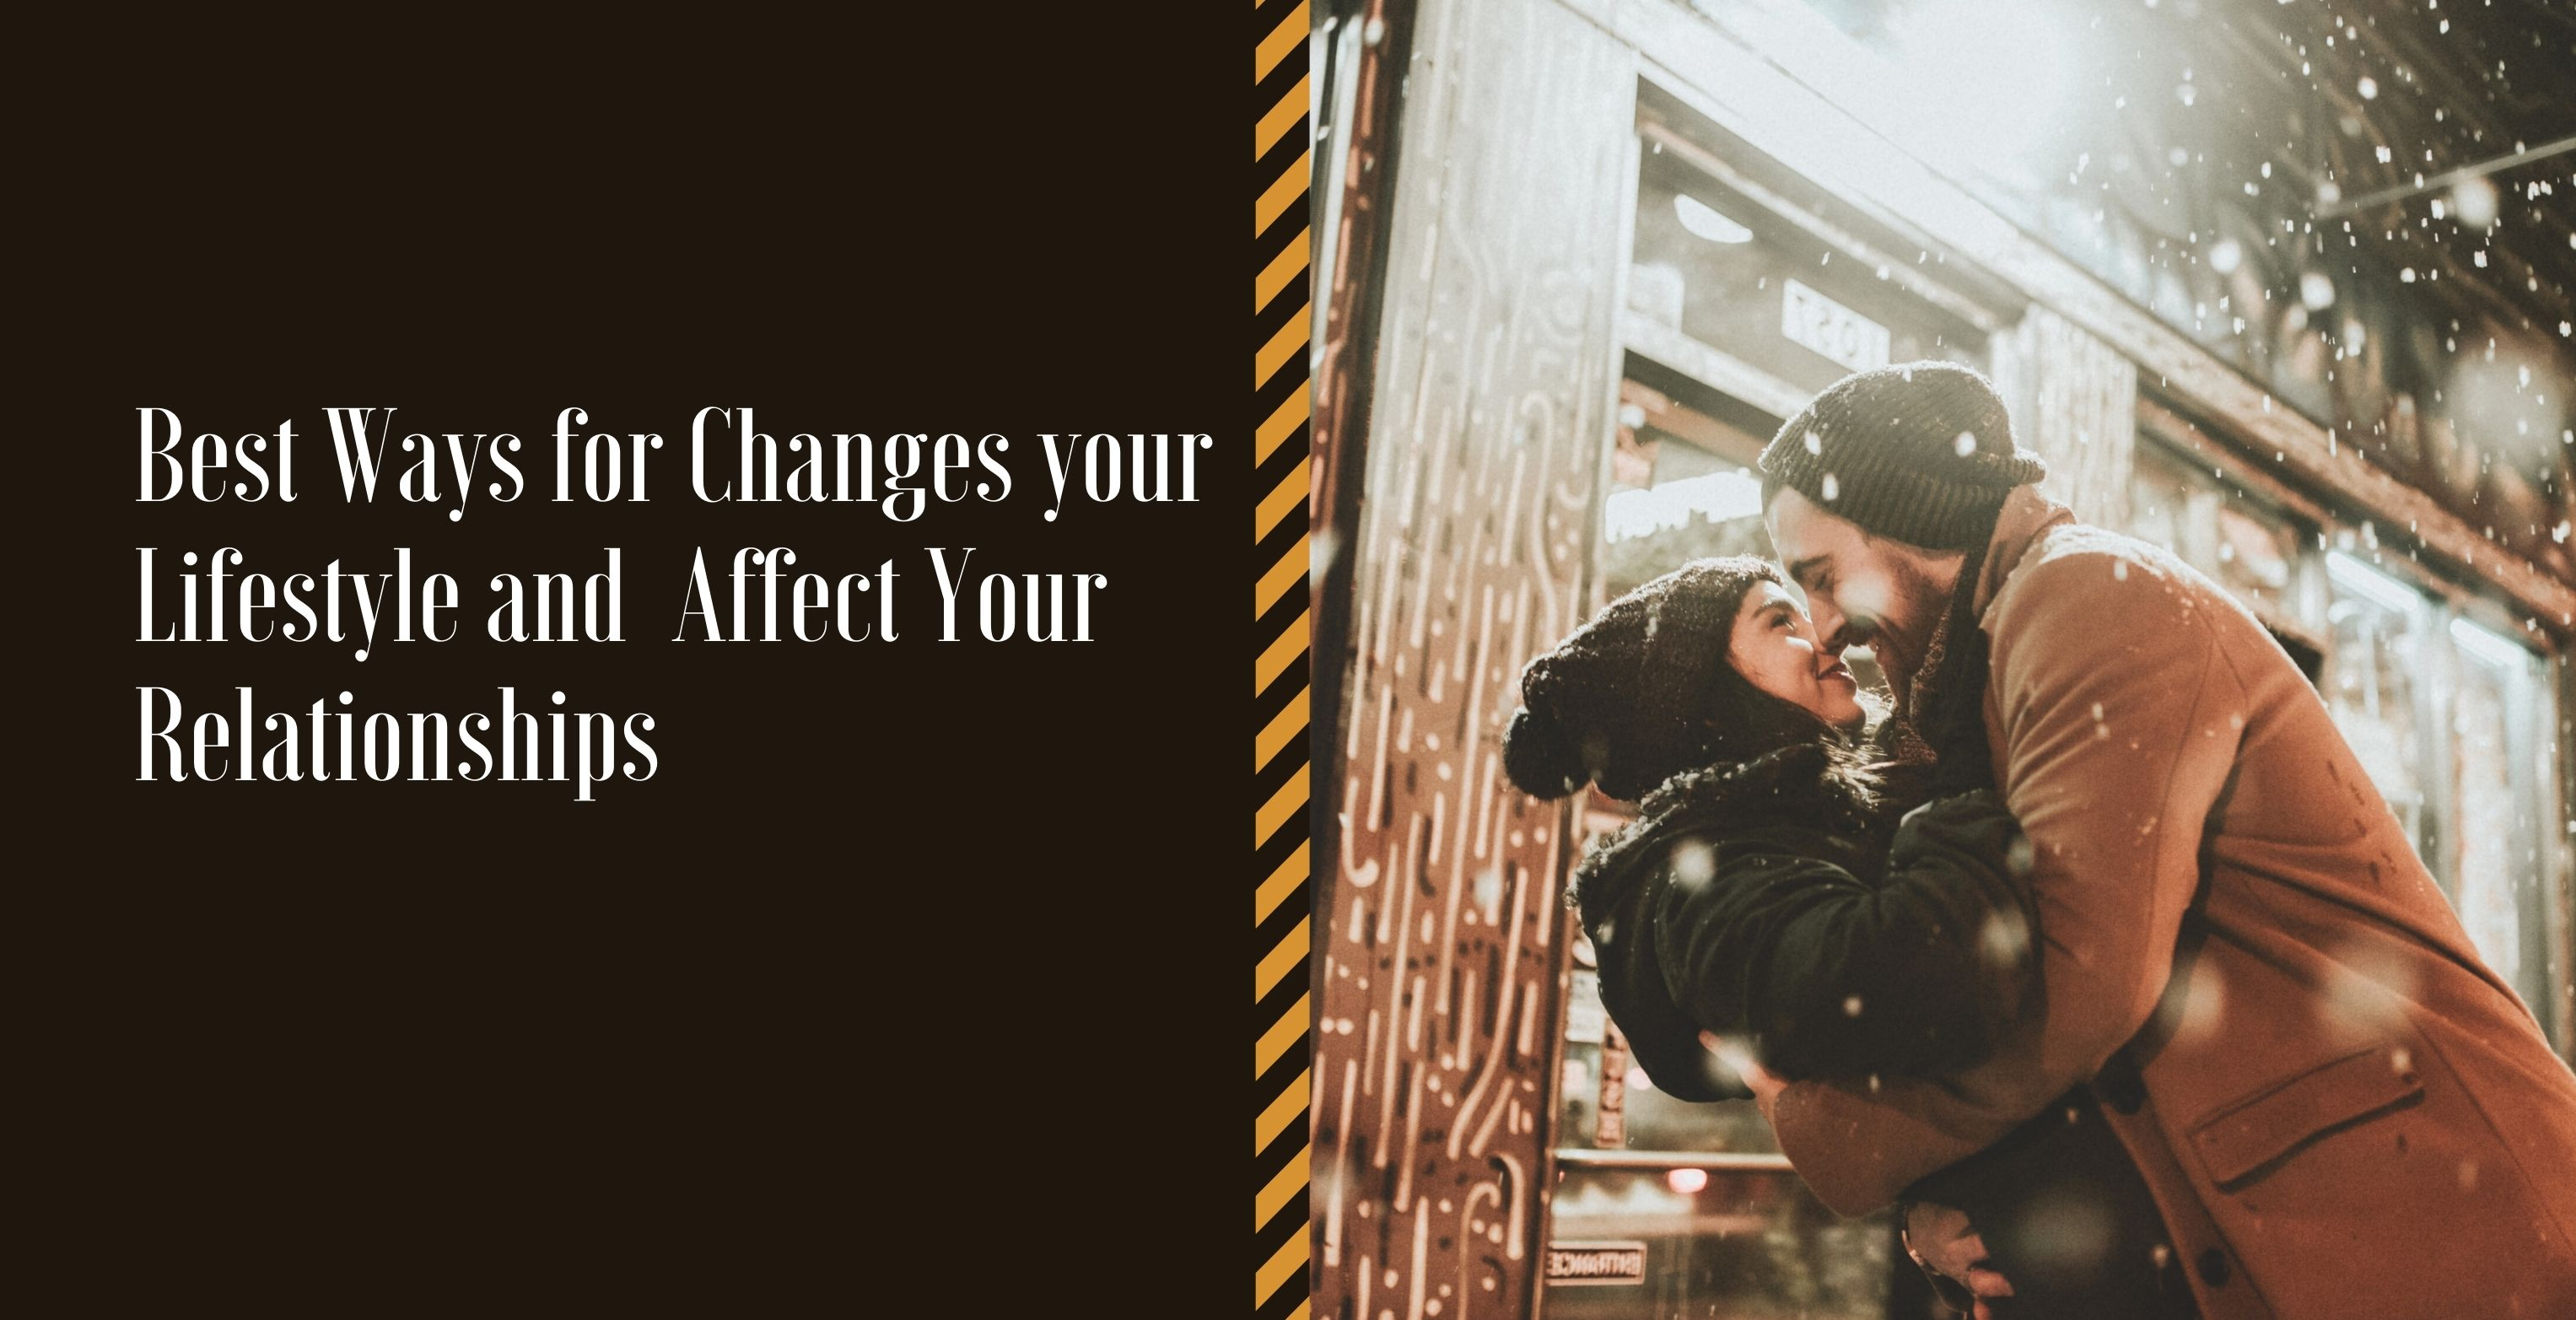 Best Ways for Changes your Lifestyle and Affect Your Relationships